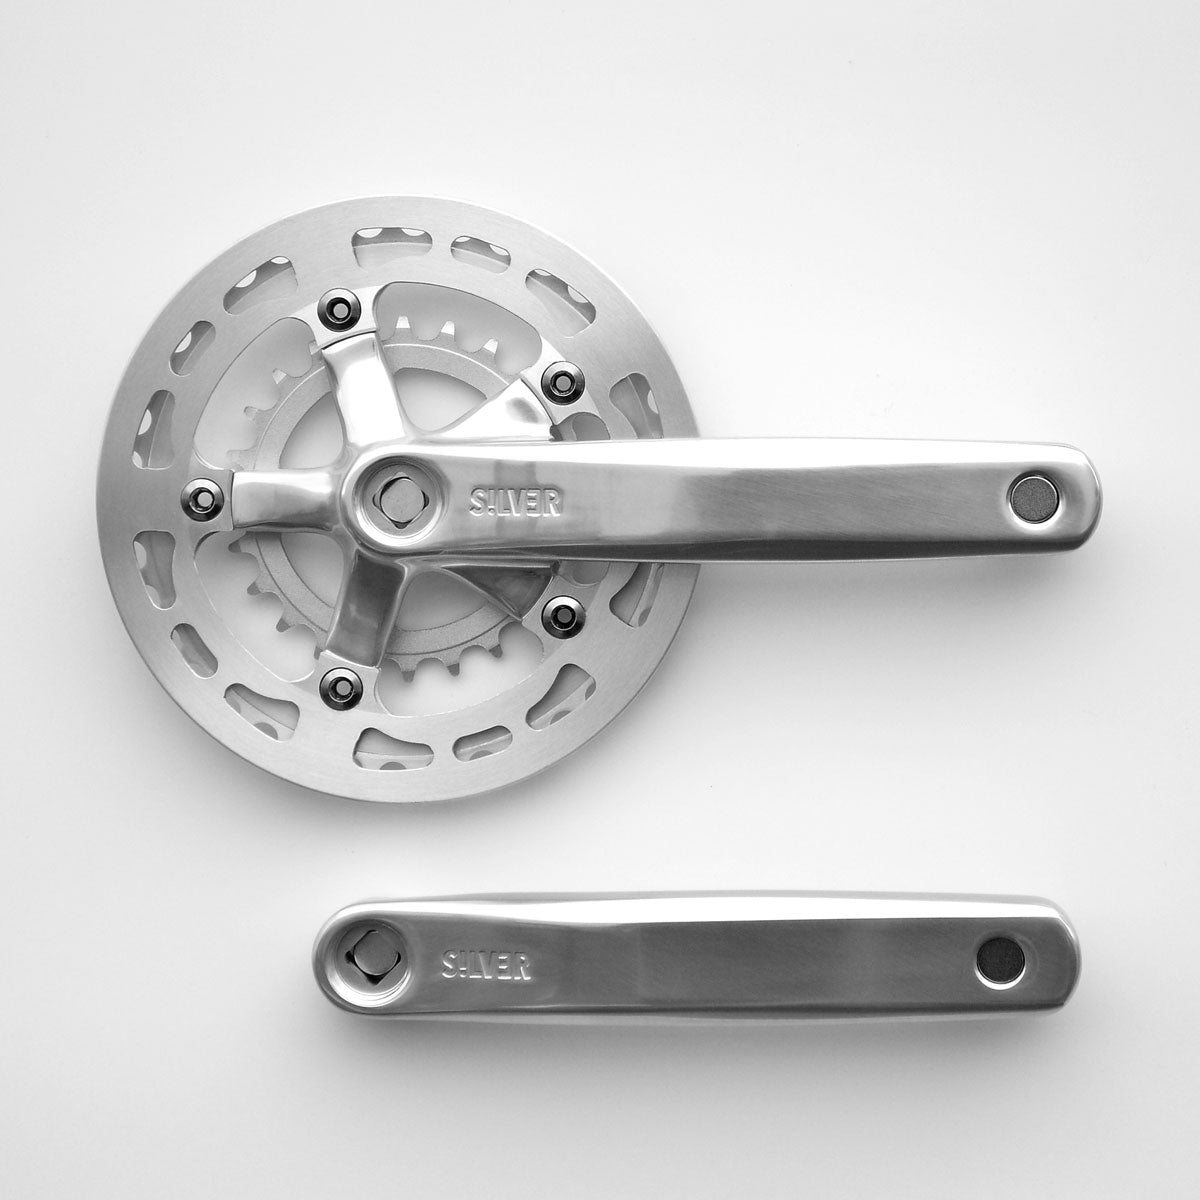 Crank - Silver - Wide/low double 38x24 (with guard)